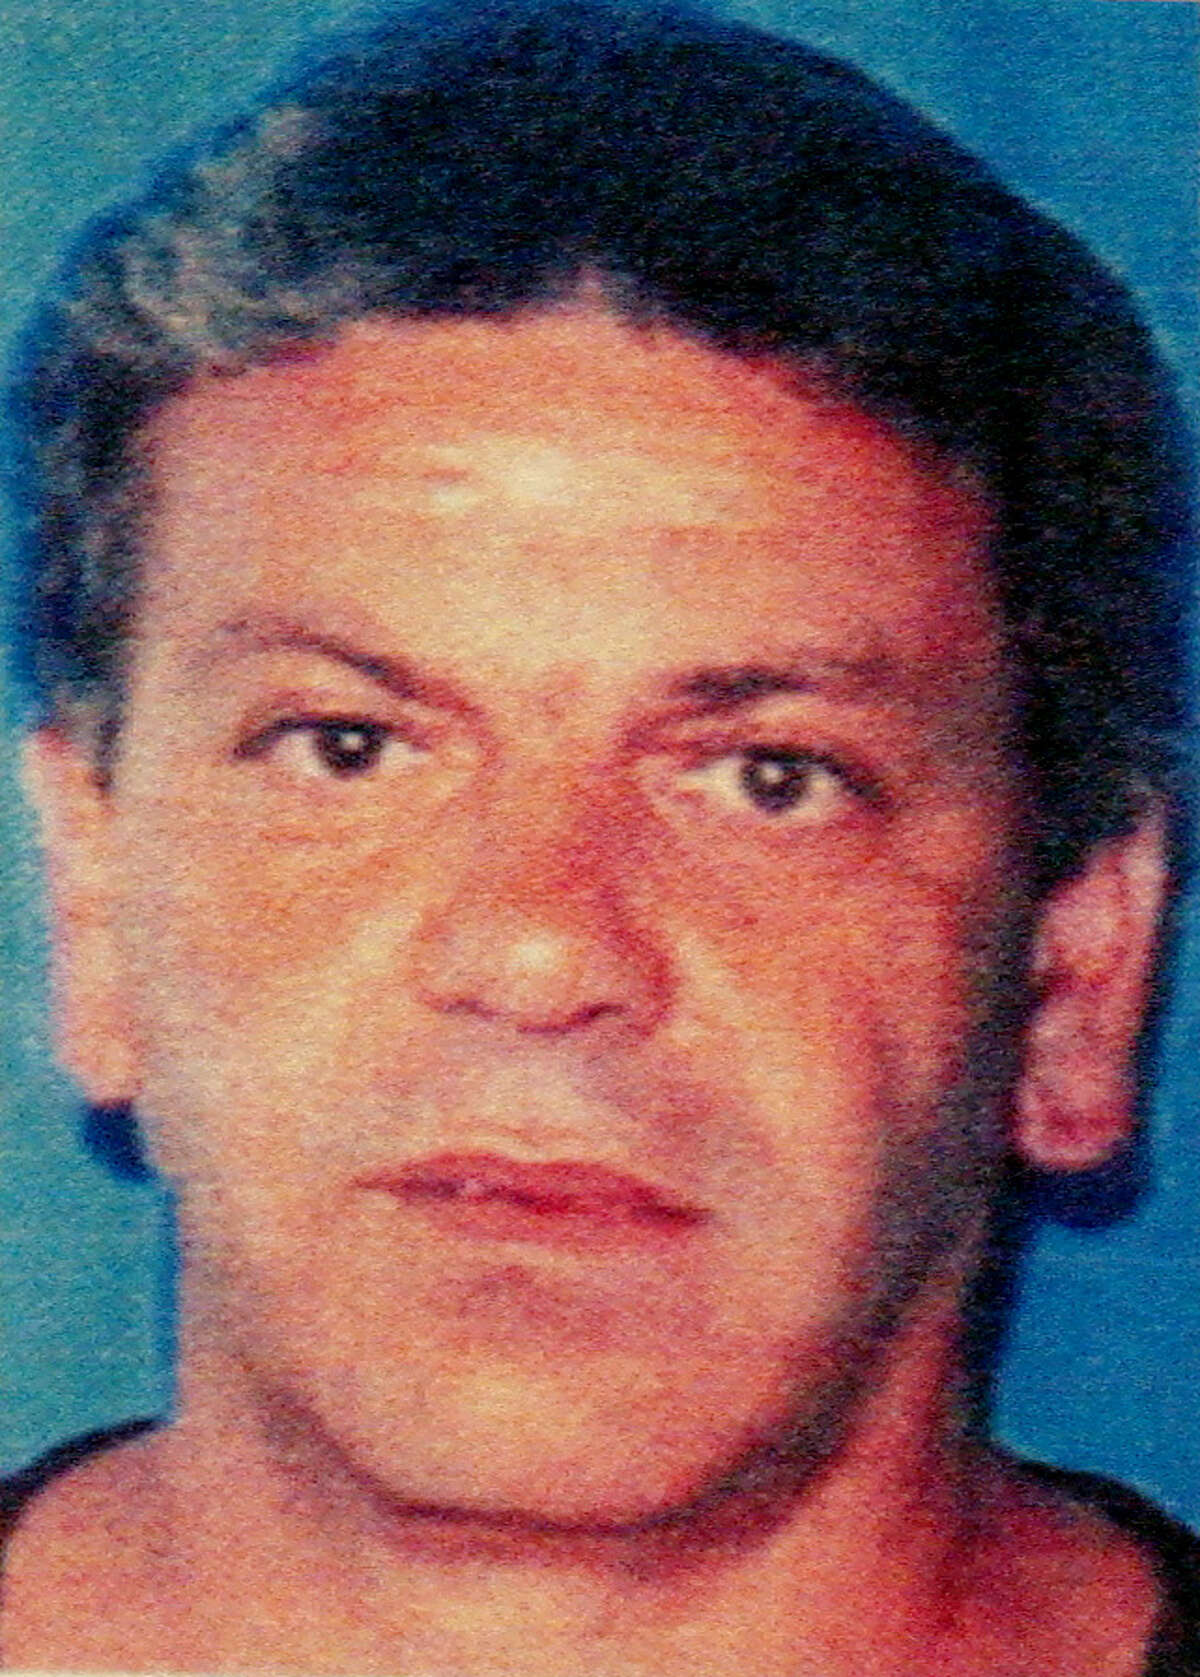 Copy of mug shot of Anthony Megale. U.S. charges acting boss, acting underboss and top leaders of Gambino crime family with racketeering and other crimes. U.S Atty. Office for Southern District of NY, St. Andrews Plaza, NYC. Wednesday March 9 2005